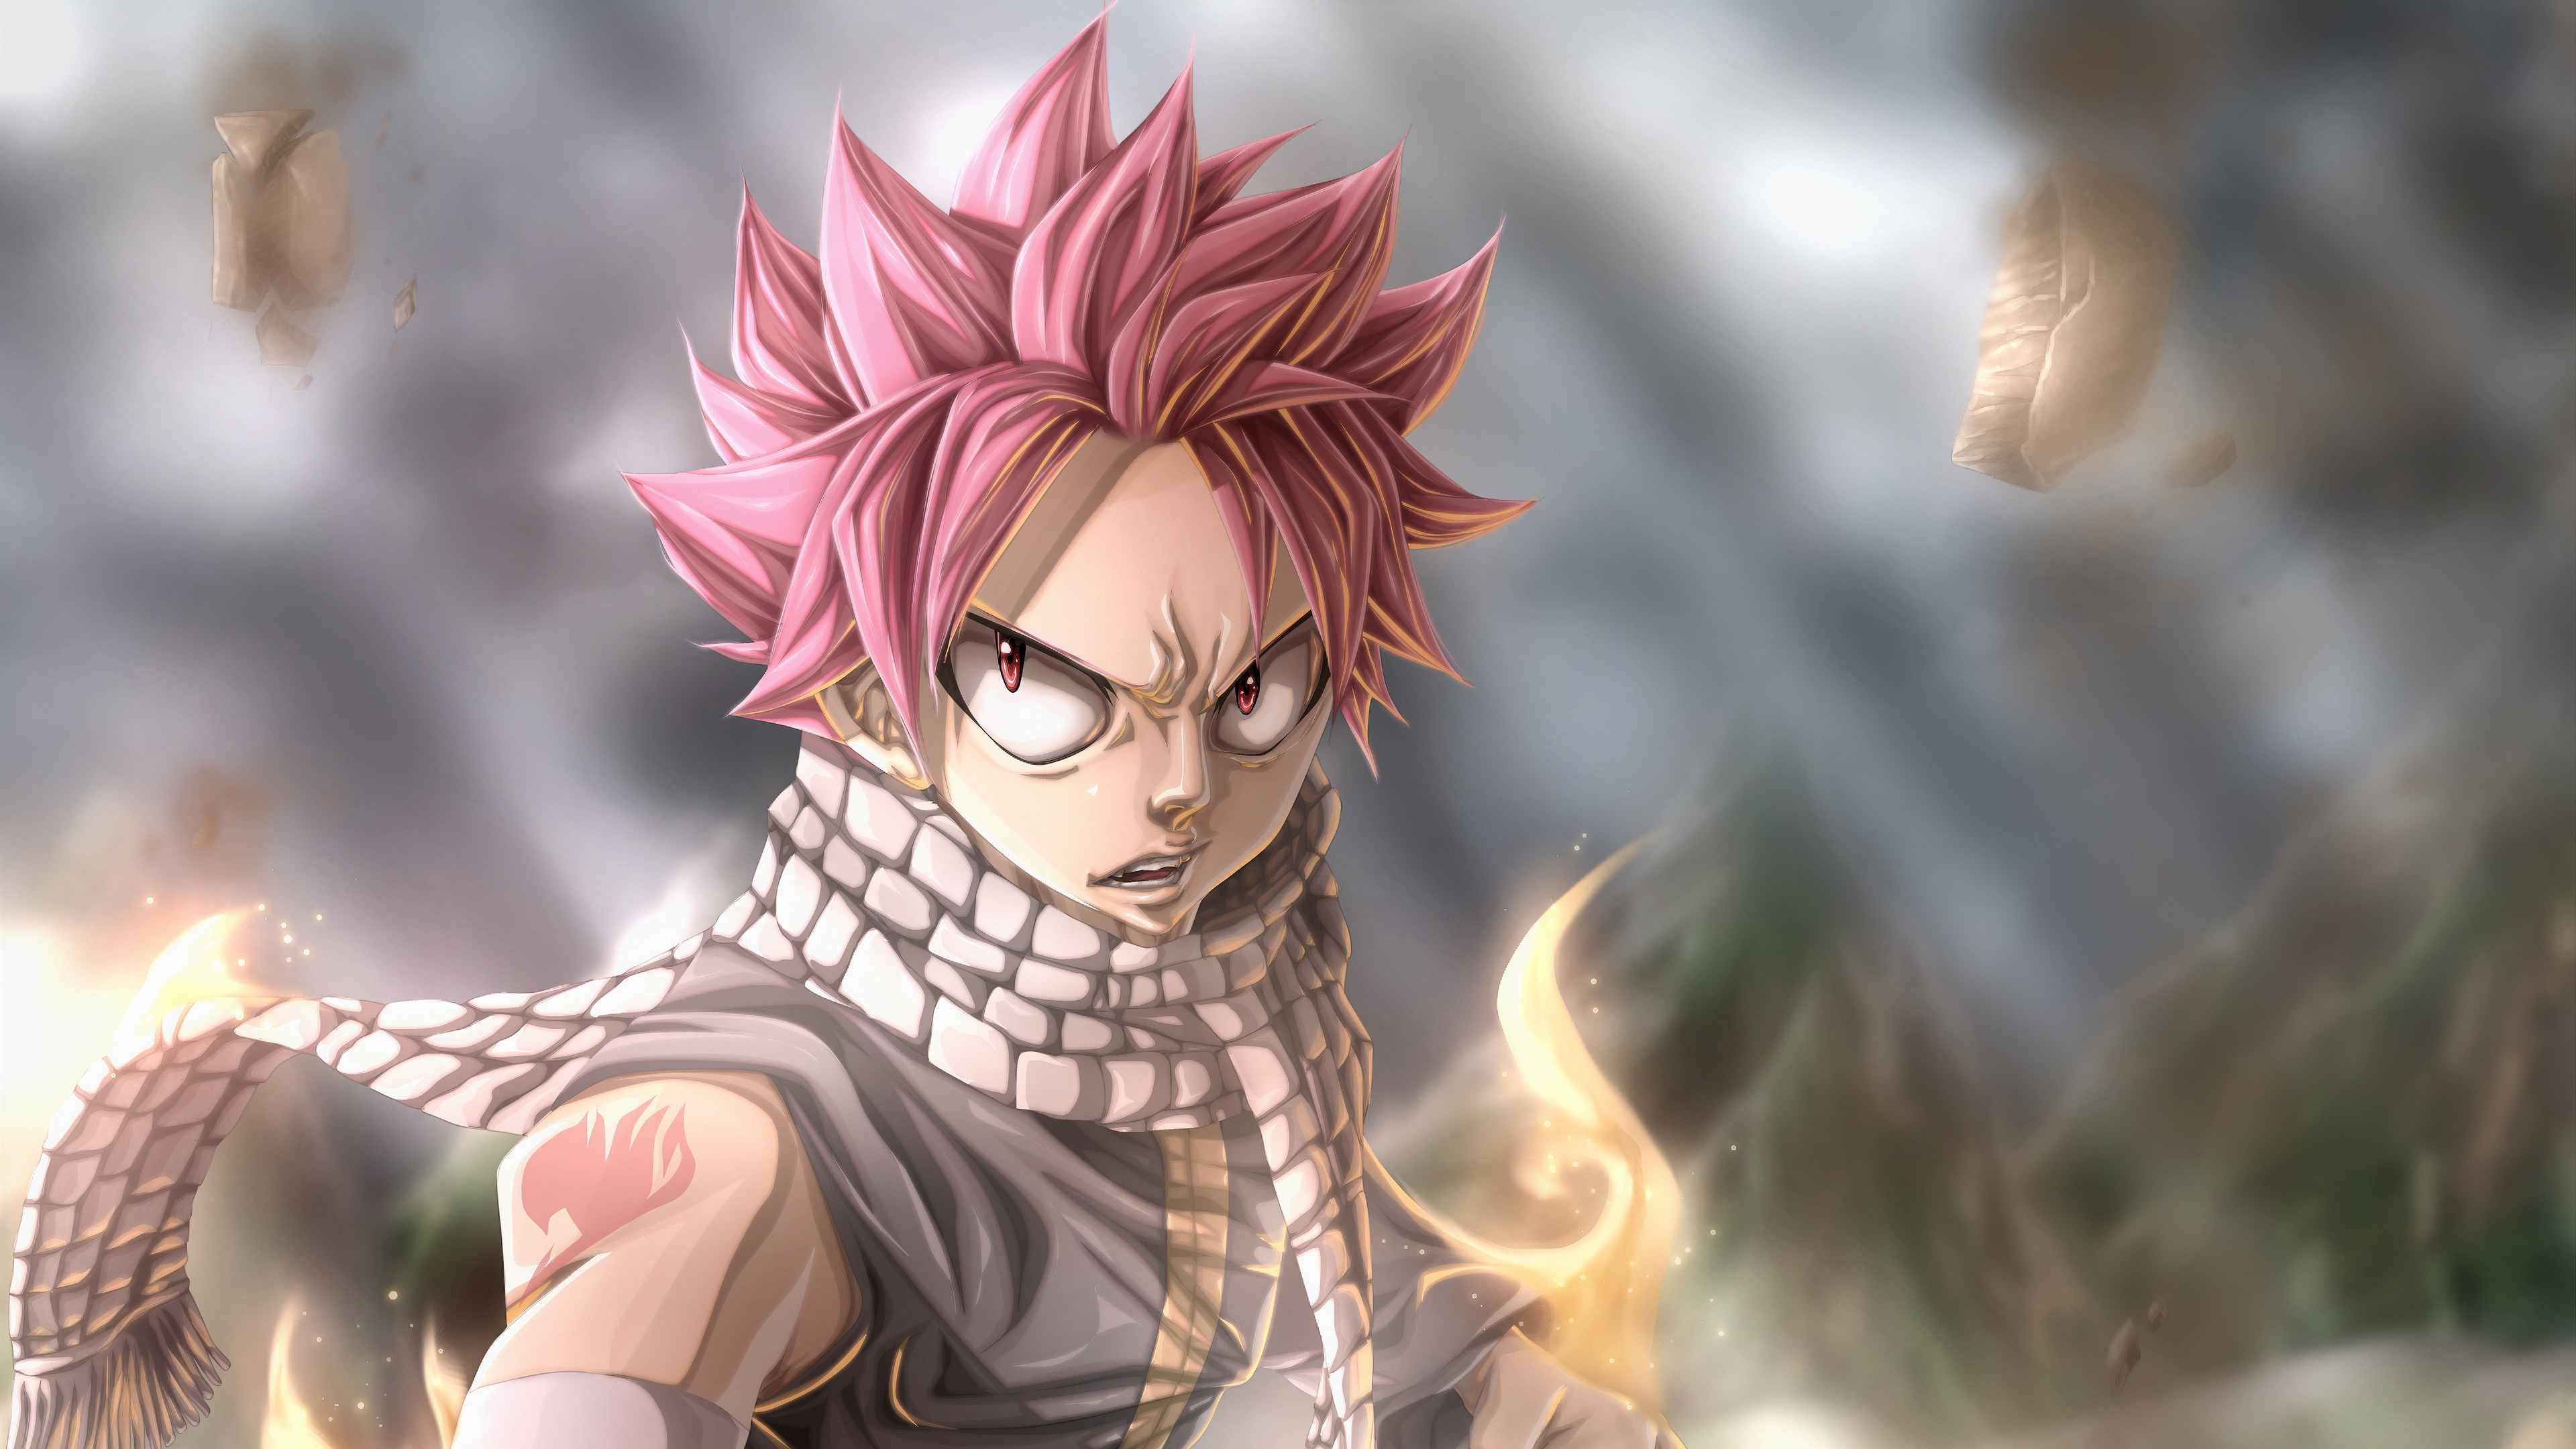 Natsu Fairy Tail Anime 4k Hd Anime 4k Wallpapers Images